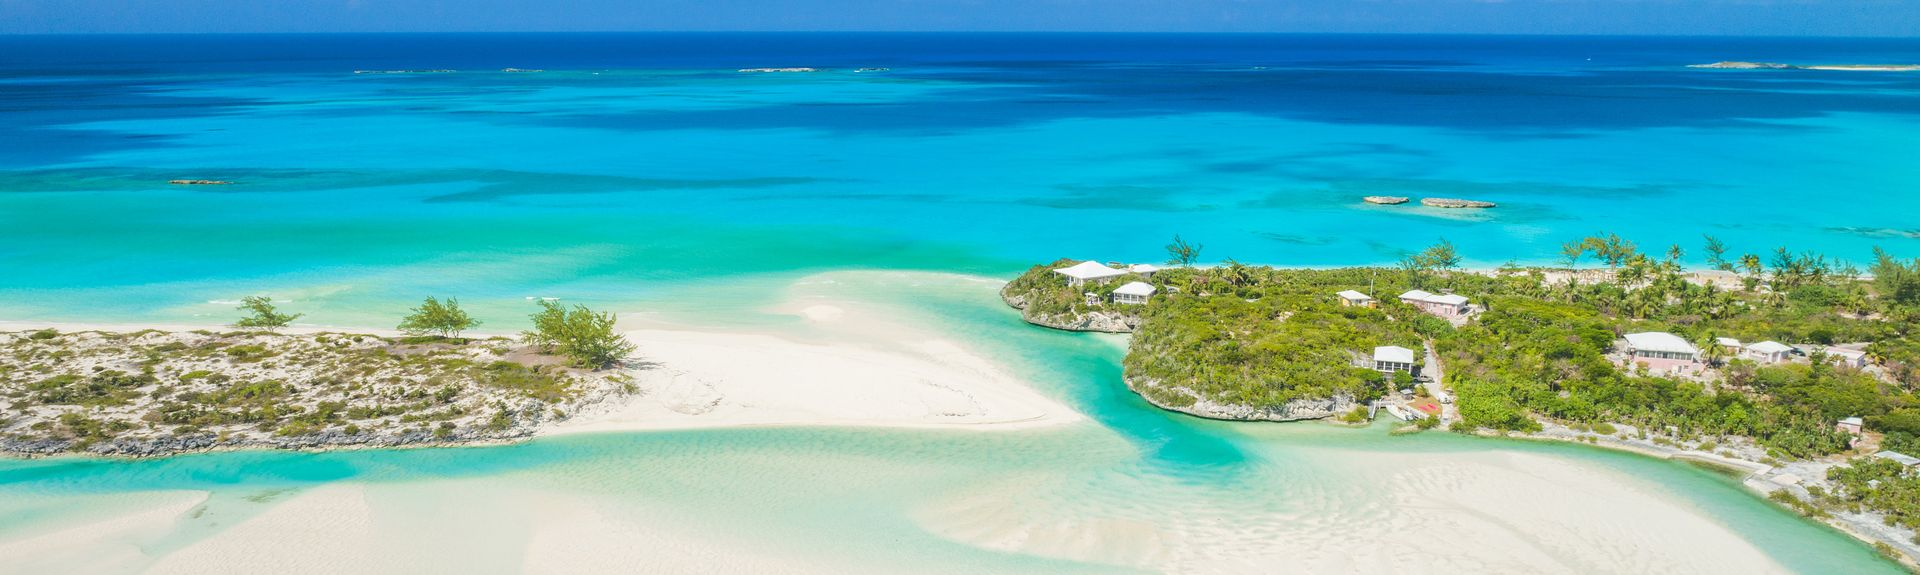 Palm Bay Beach, George Town, Great Exuma Island, Bahamas